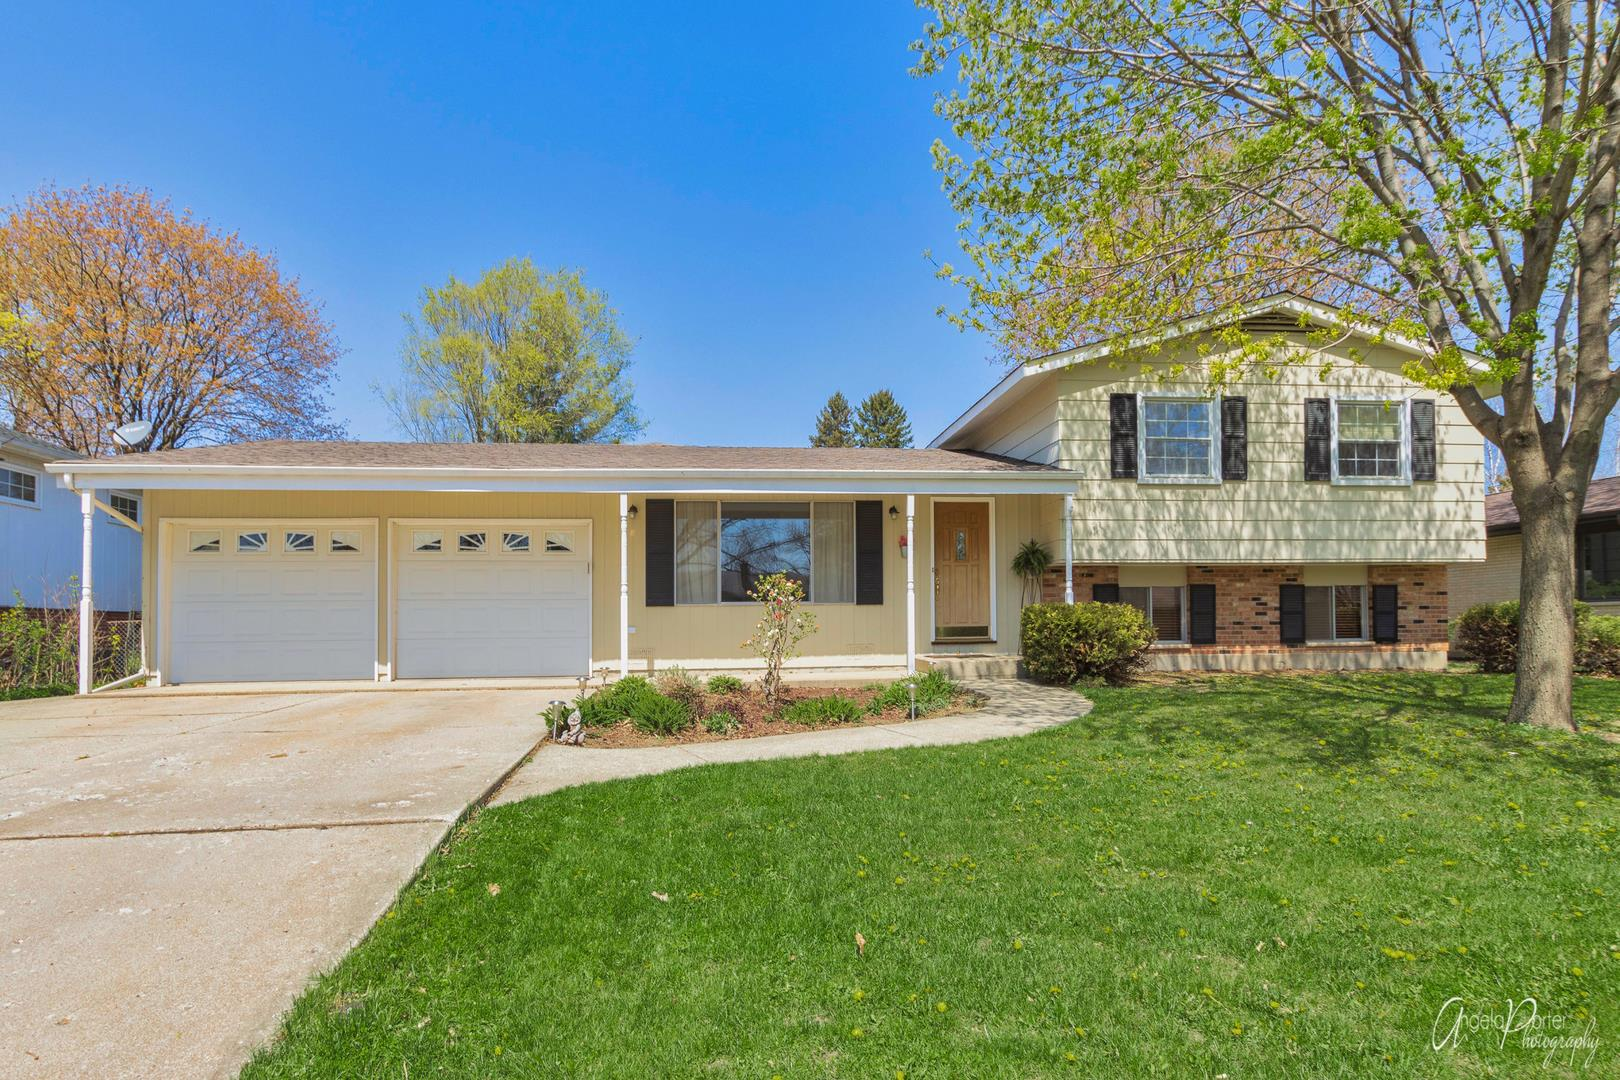 3710 W Young Street, McHenry, IL 60050 - #: 11064813